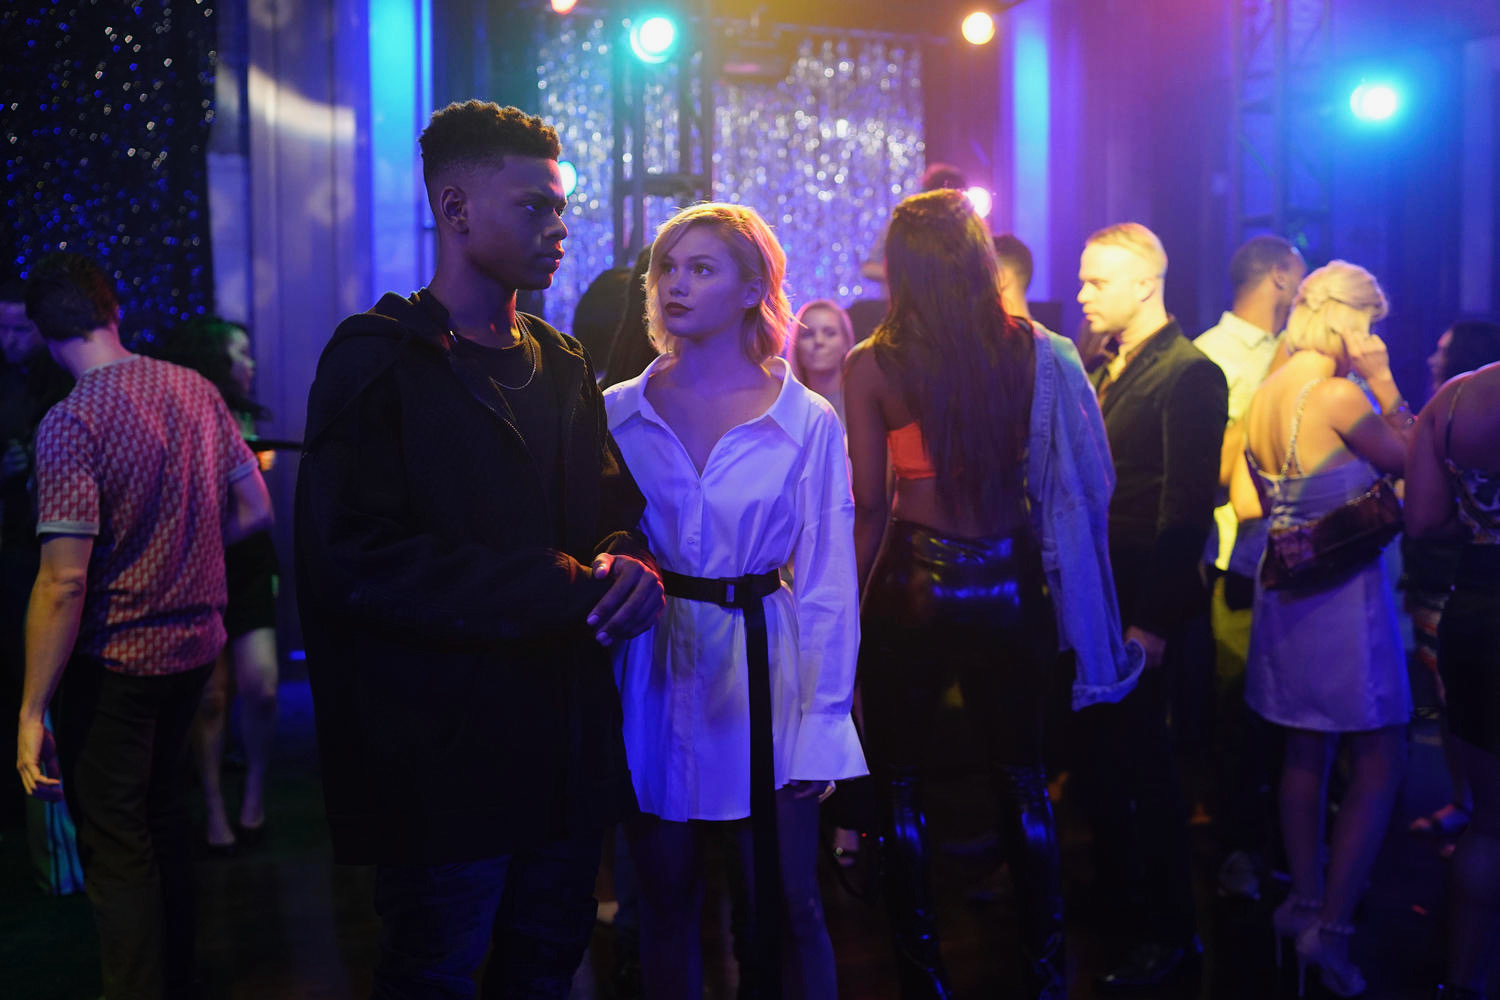 "Aubrey Joseph as Tyron, Olivia Holt as Tandy in Cloak & Dagger Season 2  Alfonso Bresciani/ ©️2018 Disney Enterprises, Inc.    ""Marvel's Cloak & Dagger"" follows the story of Tandy Bowen (Olivia Holt) and Tyrone Johnson (Aubrey Joseph) – two teenagers from very different backgrounds, who find themselves burdened and awakened to newly acquired superpowers which are mysteriously linked to one another. The only constant in their lives is danger and each other. Tandy can emit light daggers and Tyrone has the ability to control the power of darkness. They quickly learn they are better together than apart."